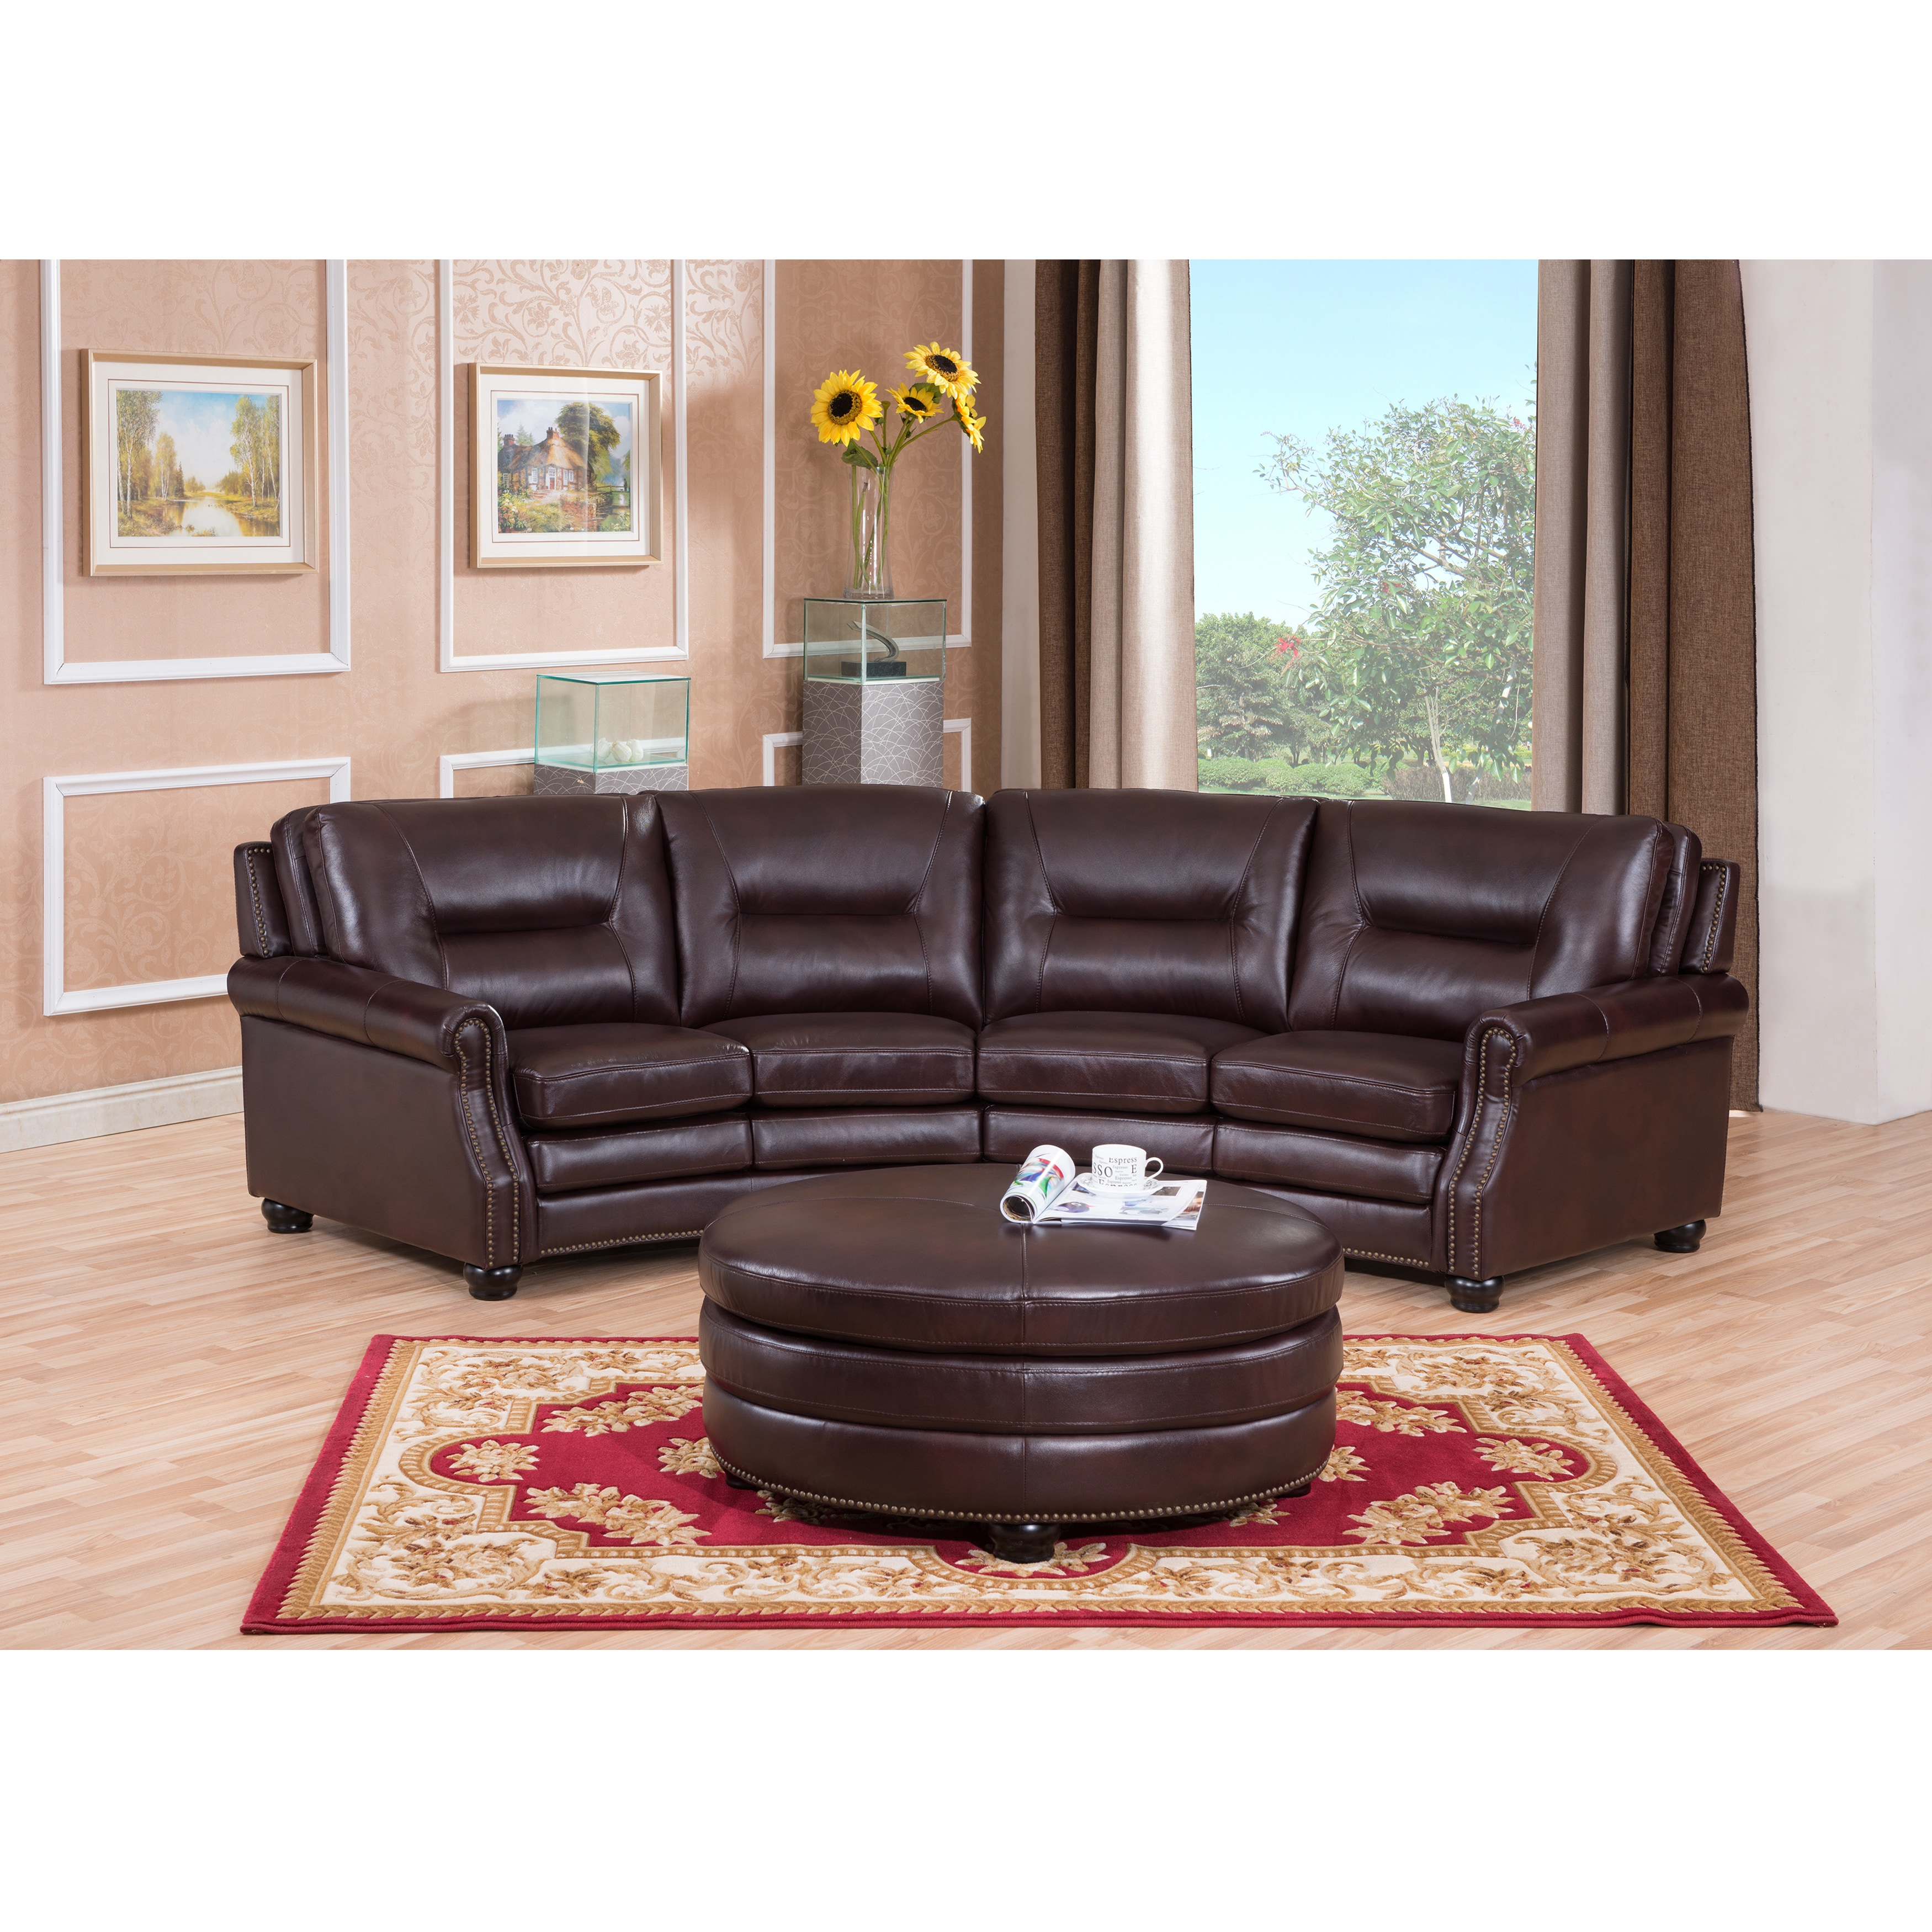 Sofaweb.com Delta Chocolate Brown Curved Top Grain Leather Sectional Sofa  And Ottoman